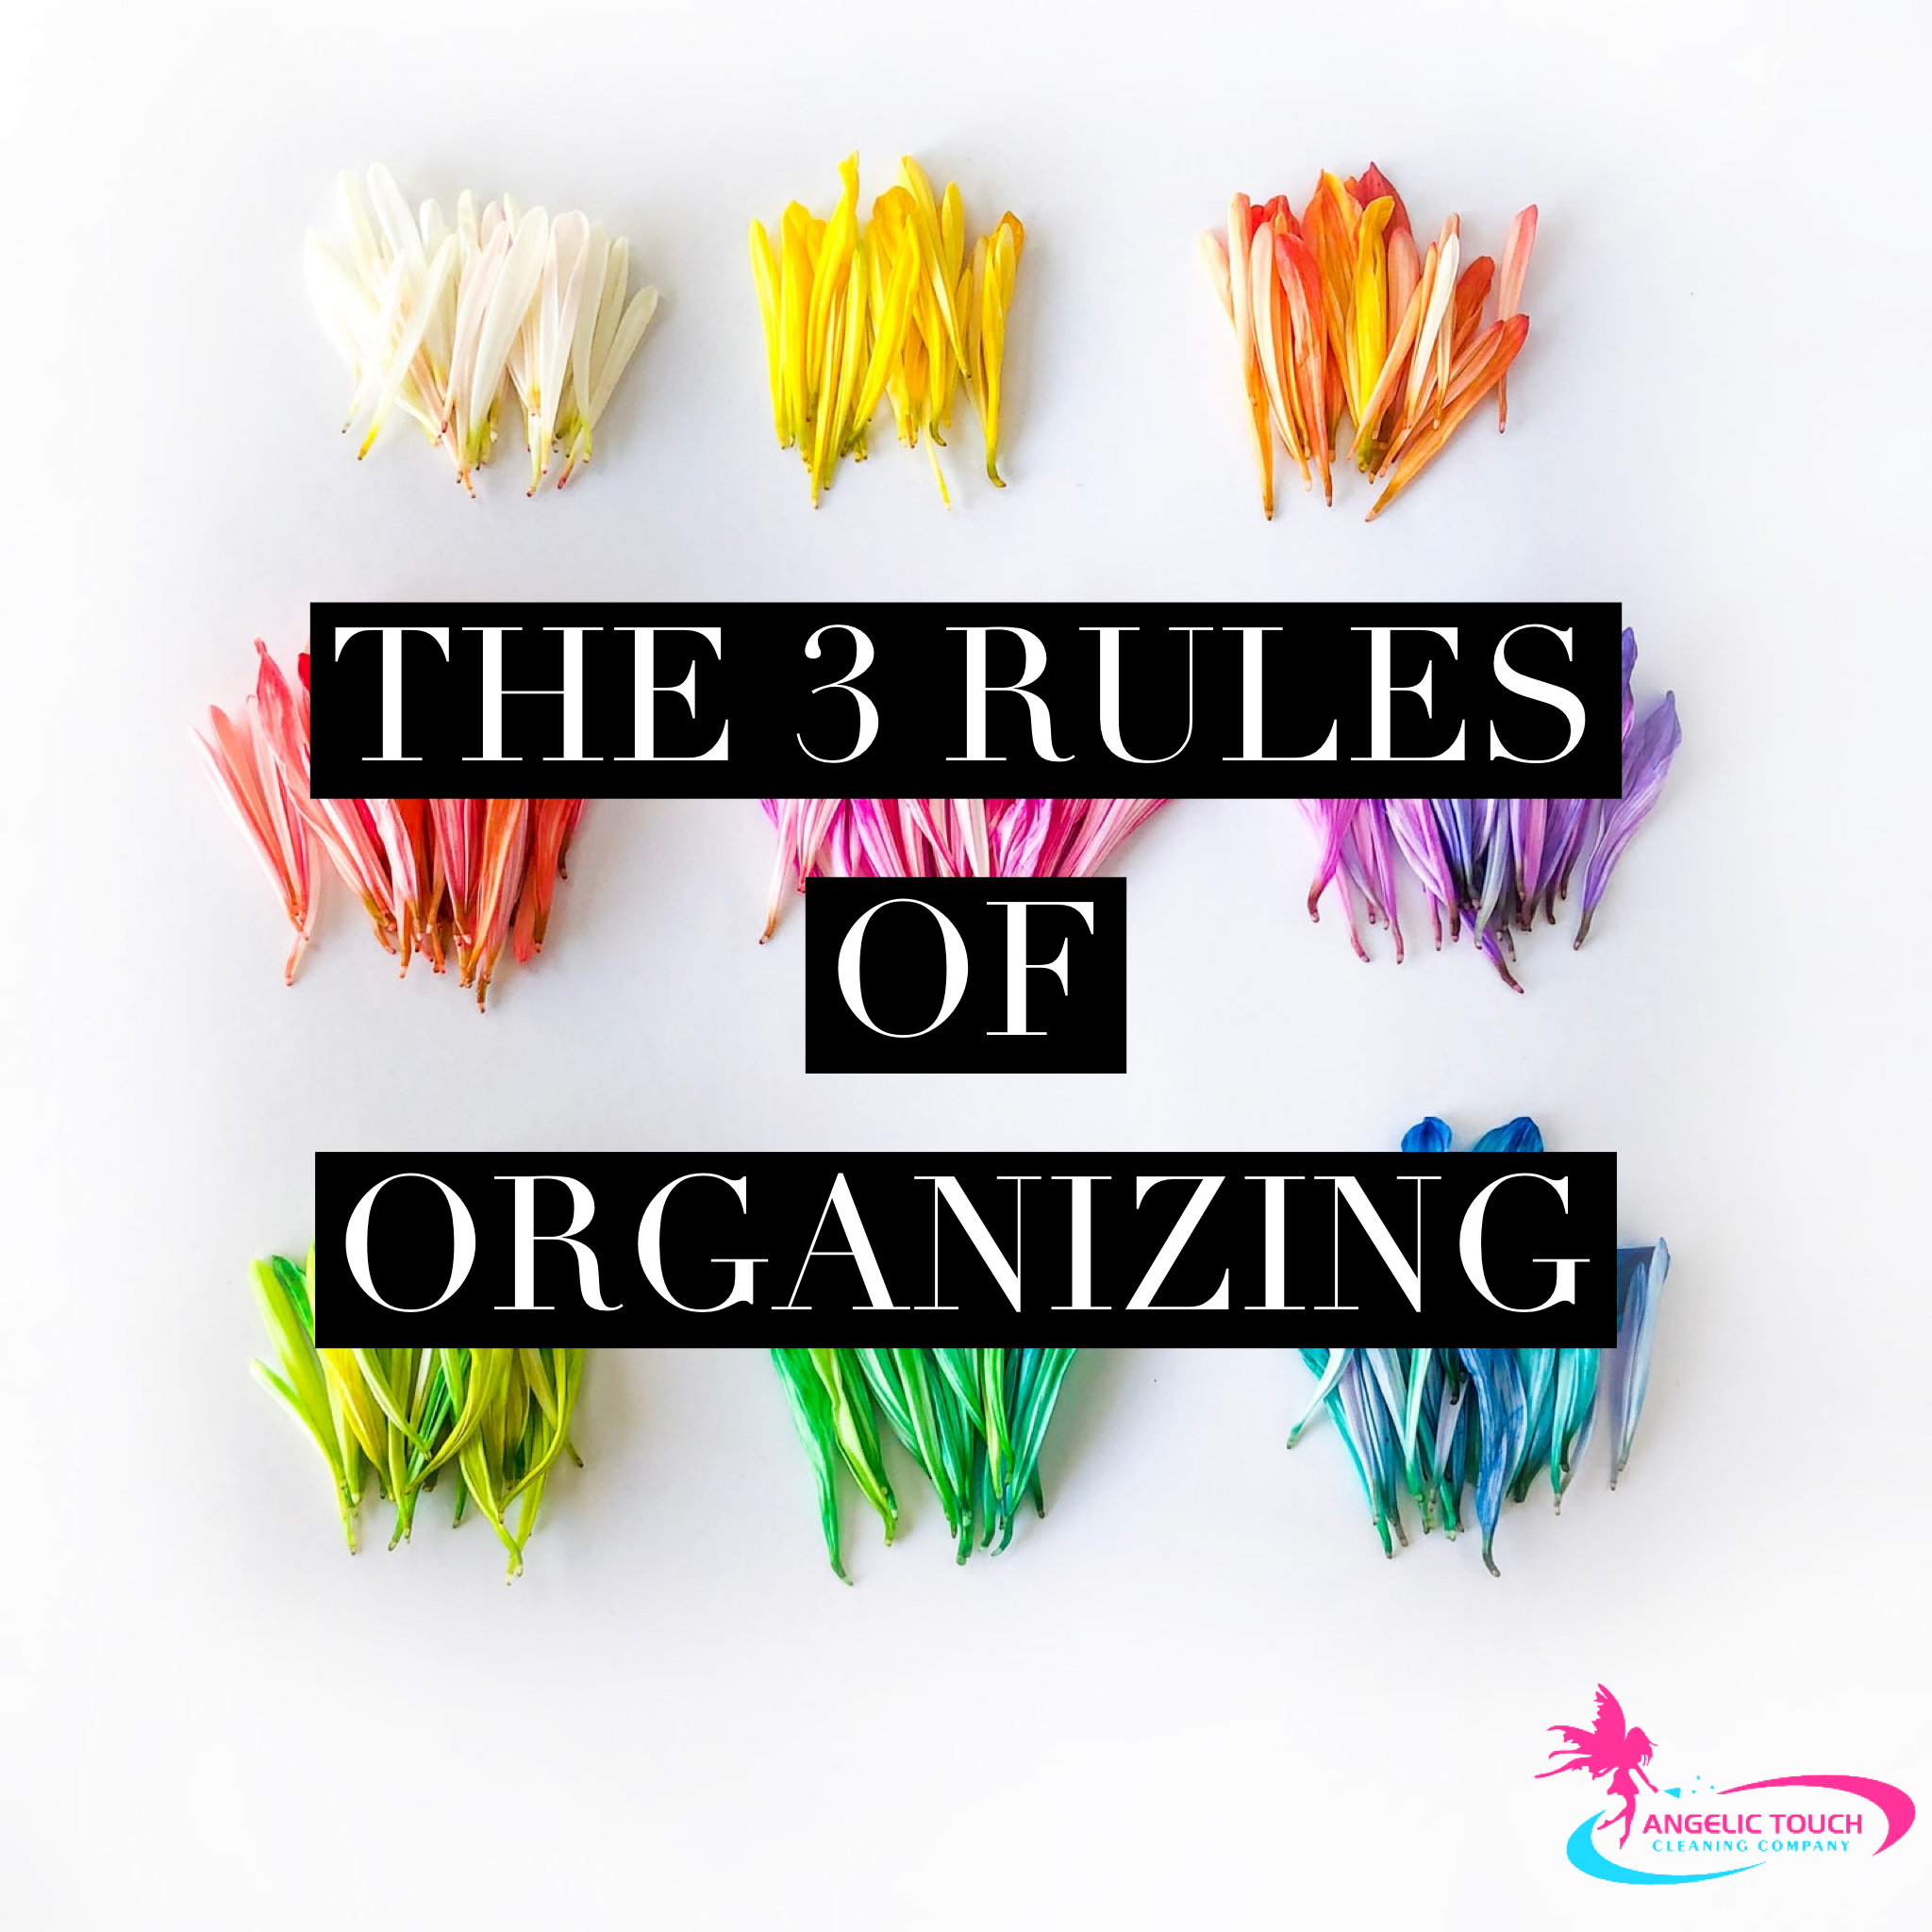 The 3 Rules of Organizing